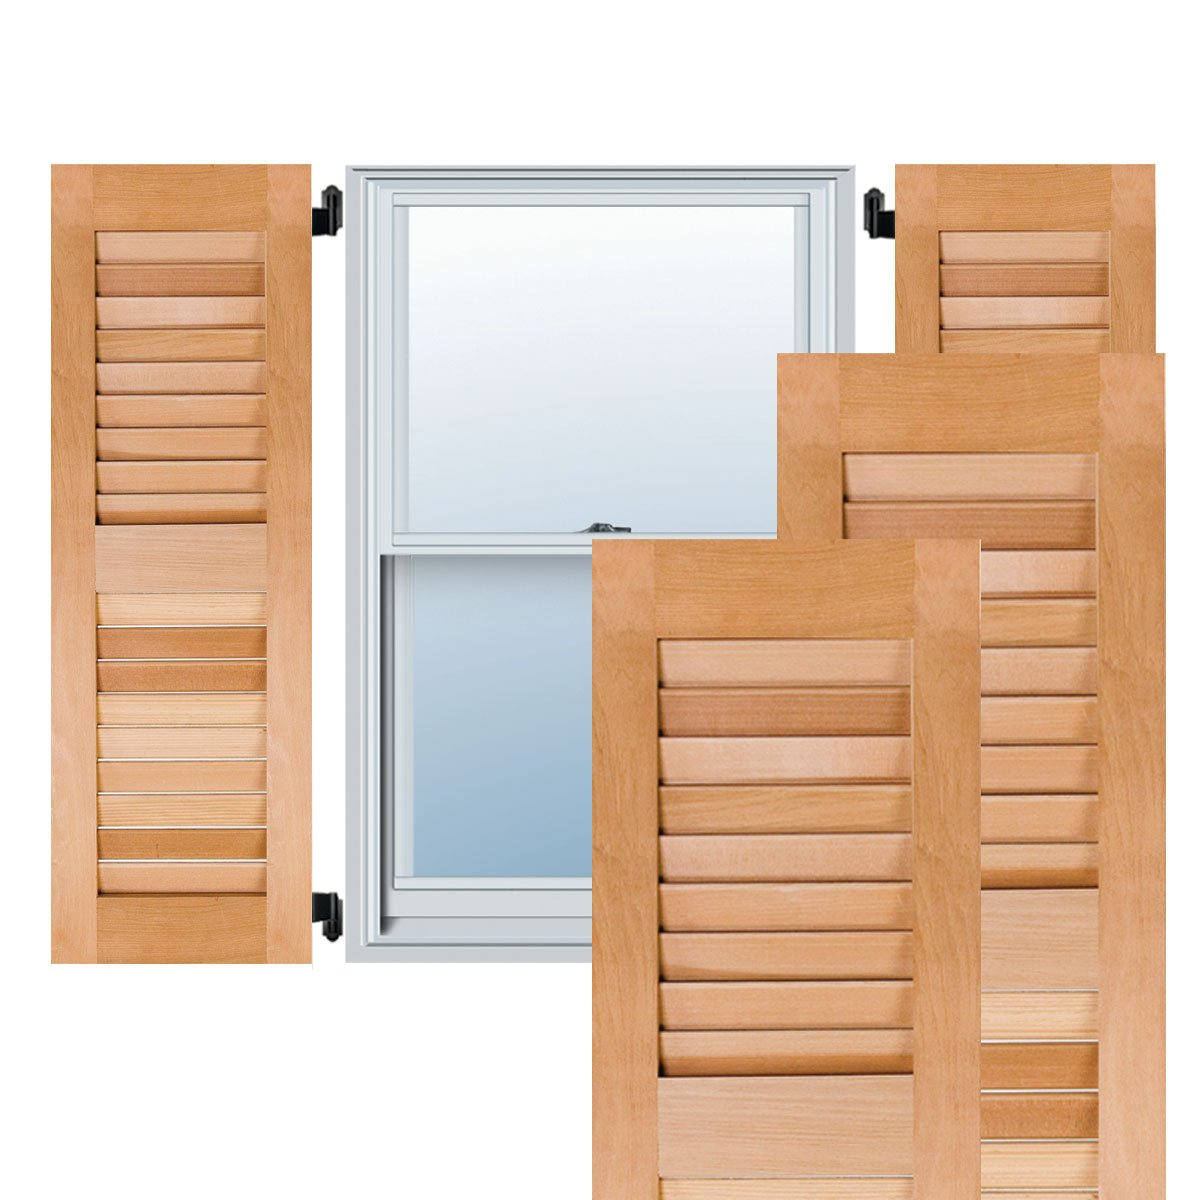 Ekena Millwork RWL18X039UNW Exterior Real Wood Western Red Cedar Open Louvered Shutters 18W x 39H Unfinished Per Pair